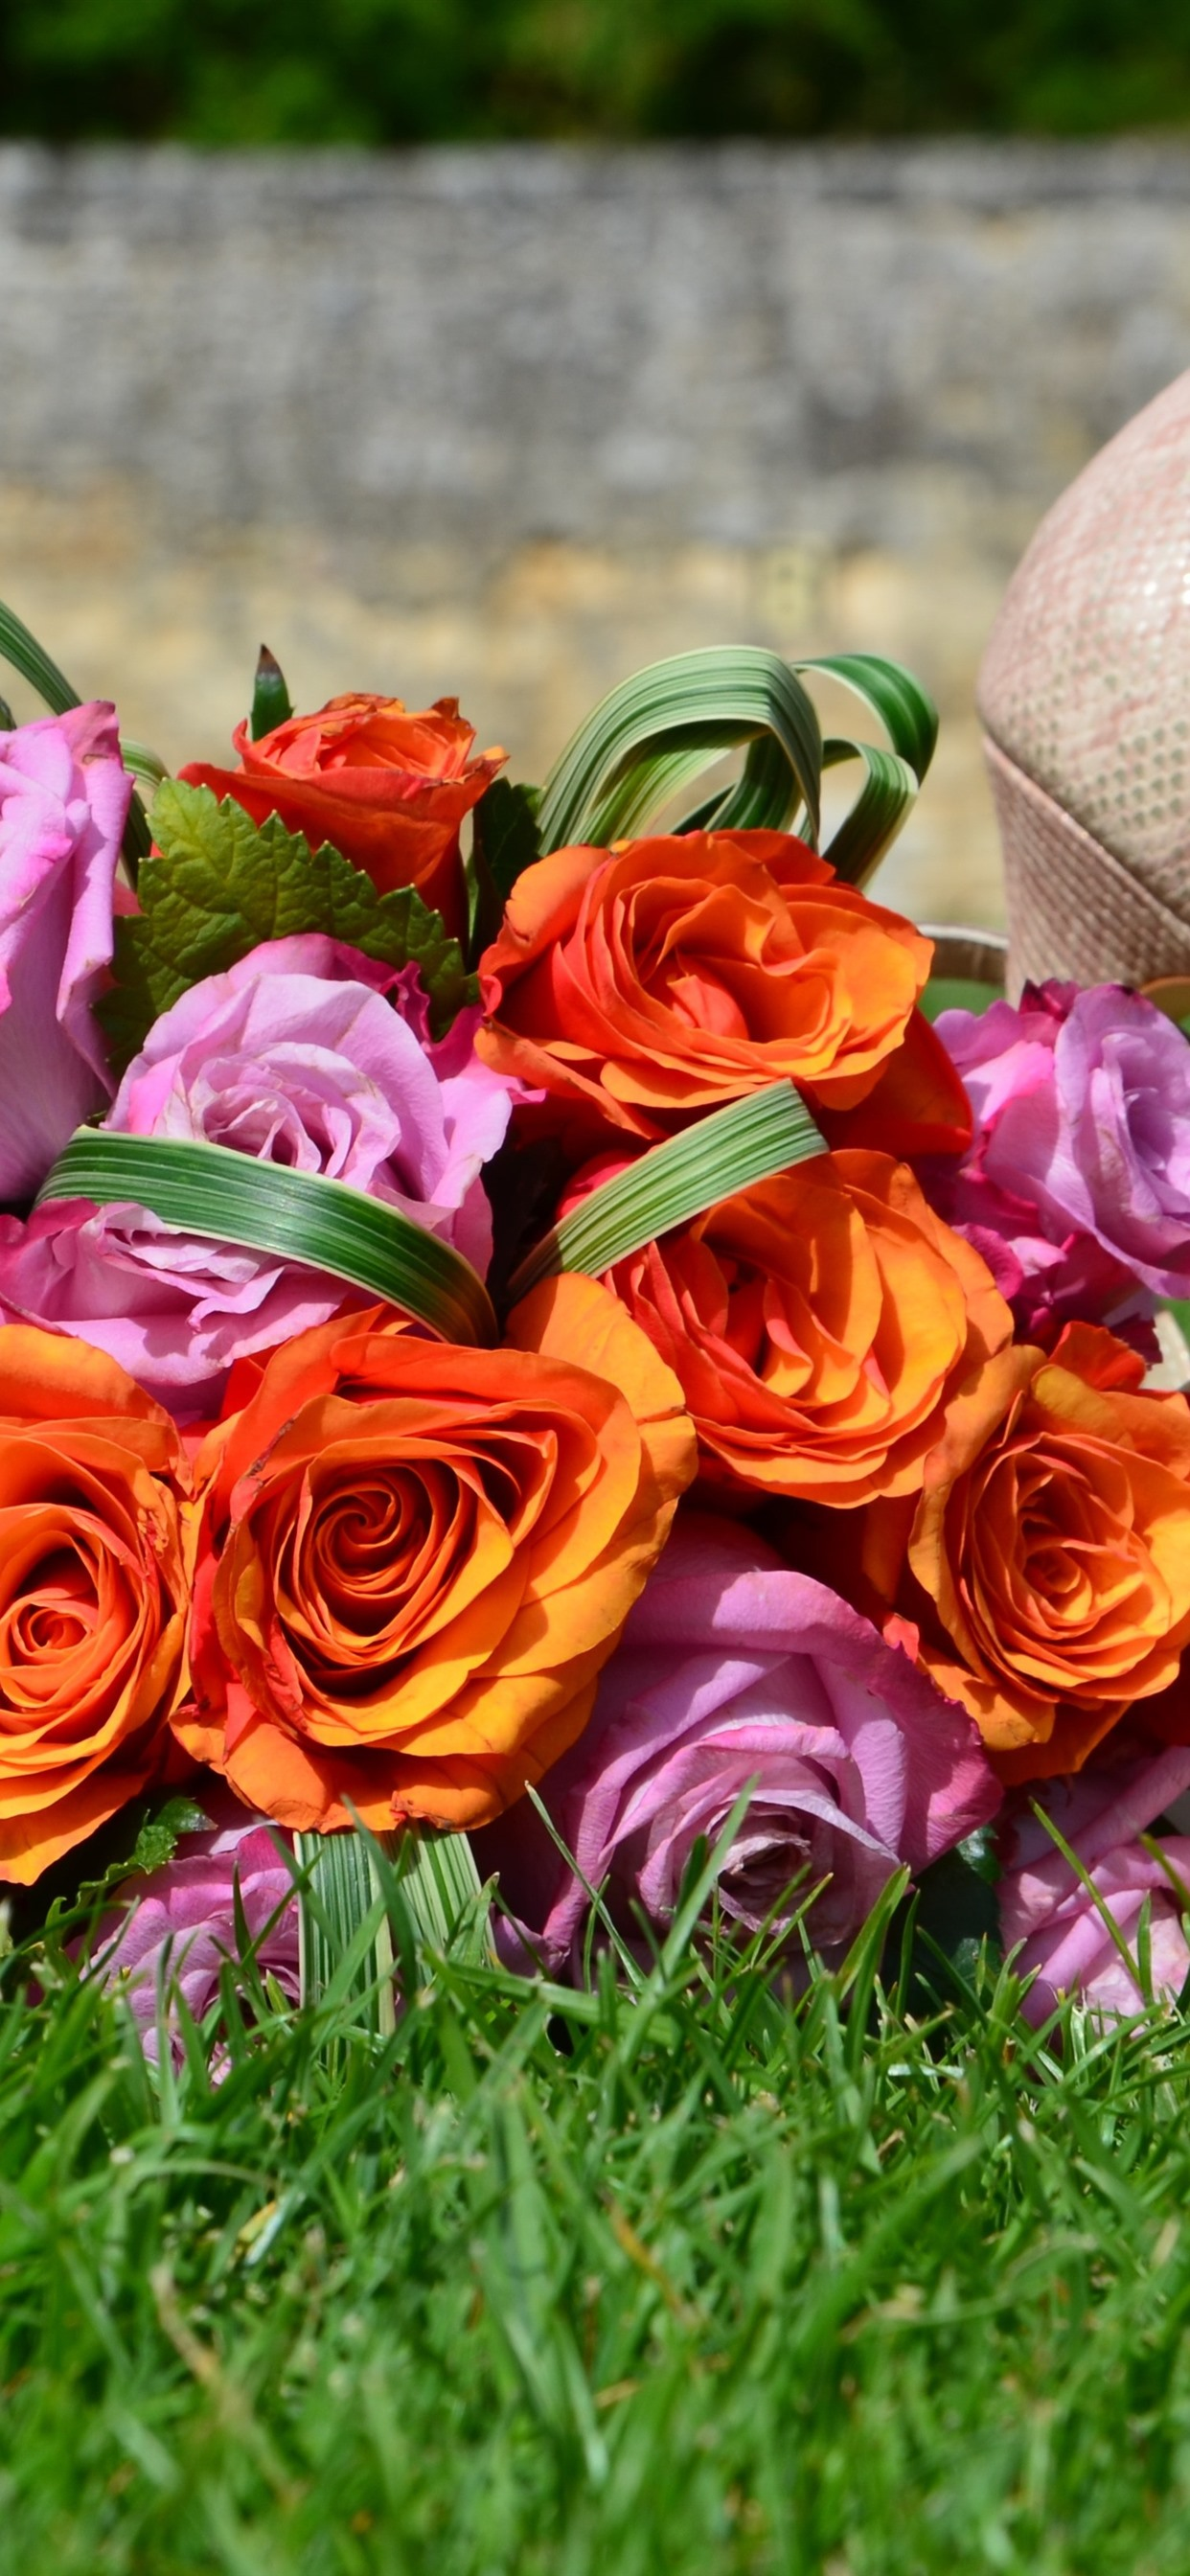 Pink And Orange Roses Shoes Grass 1242x2688 Iphone 11 Pro Xs Max Wallpaper Background Picture Image